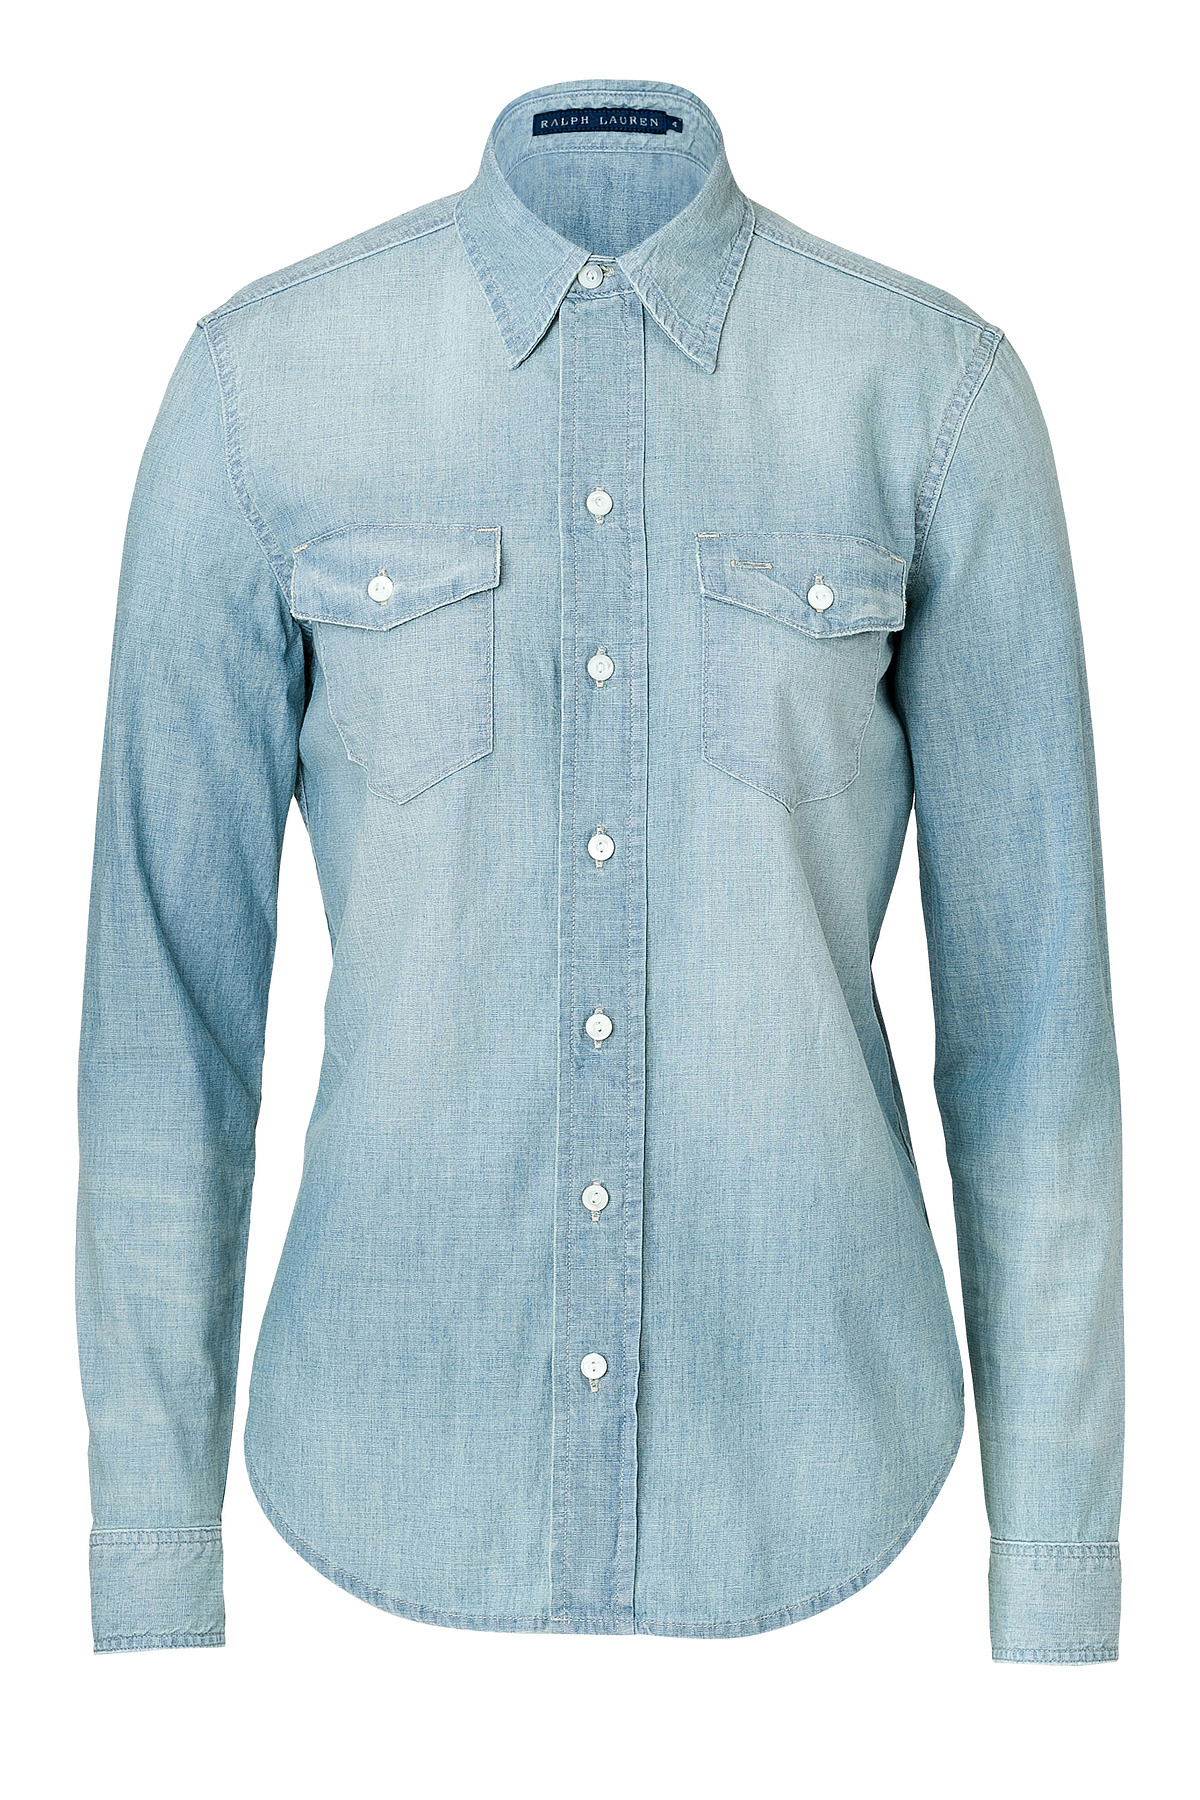 lyst polo ralph lauren cotton denim work shirt blue in